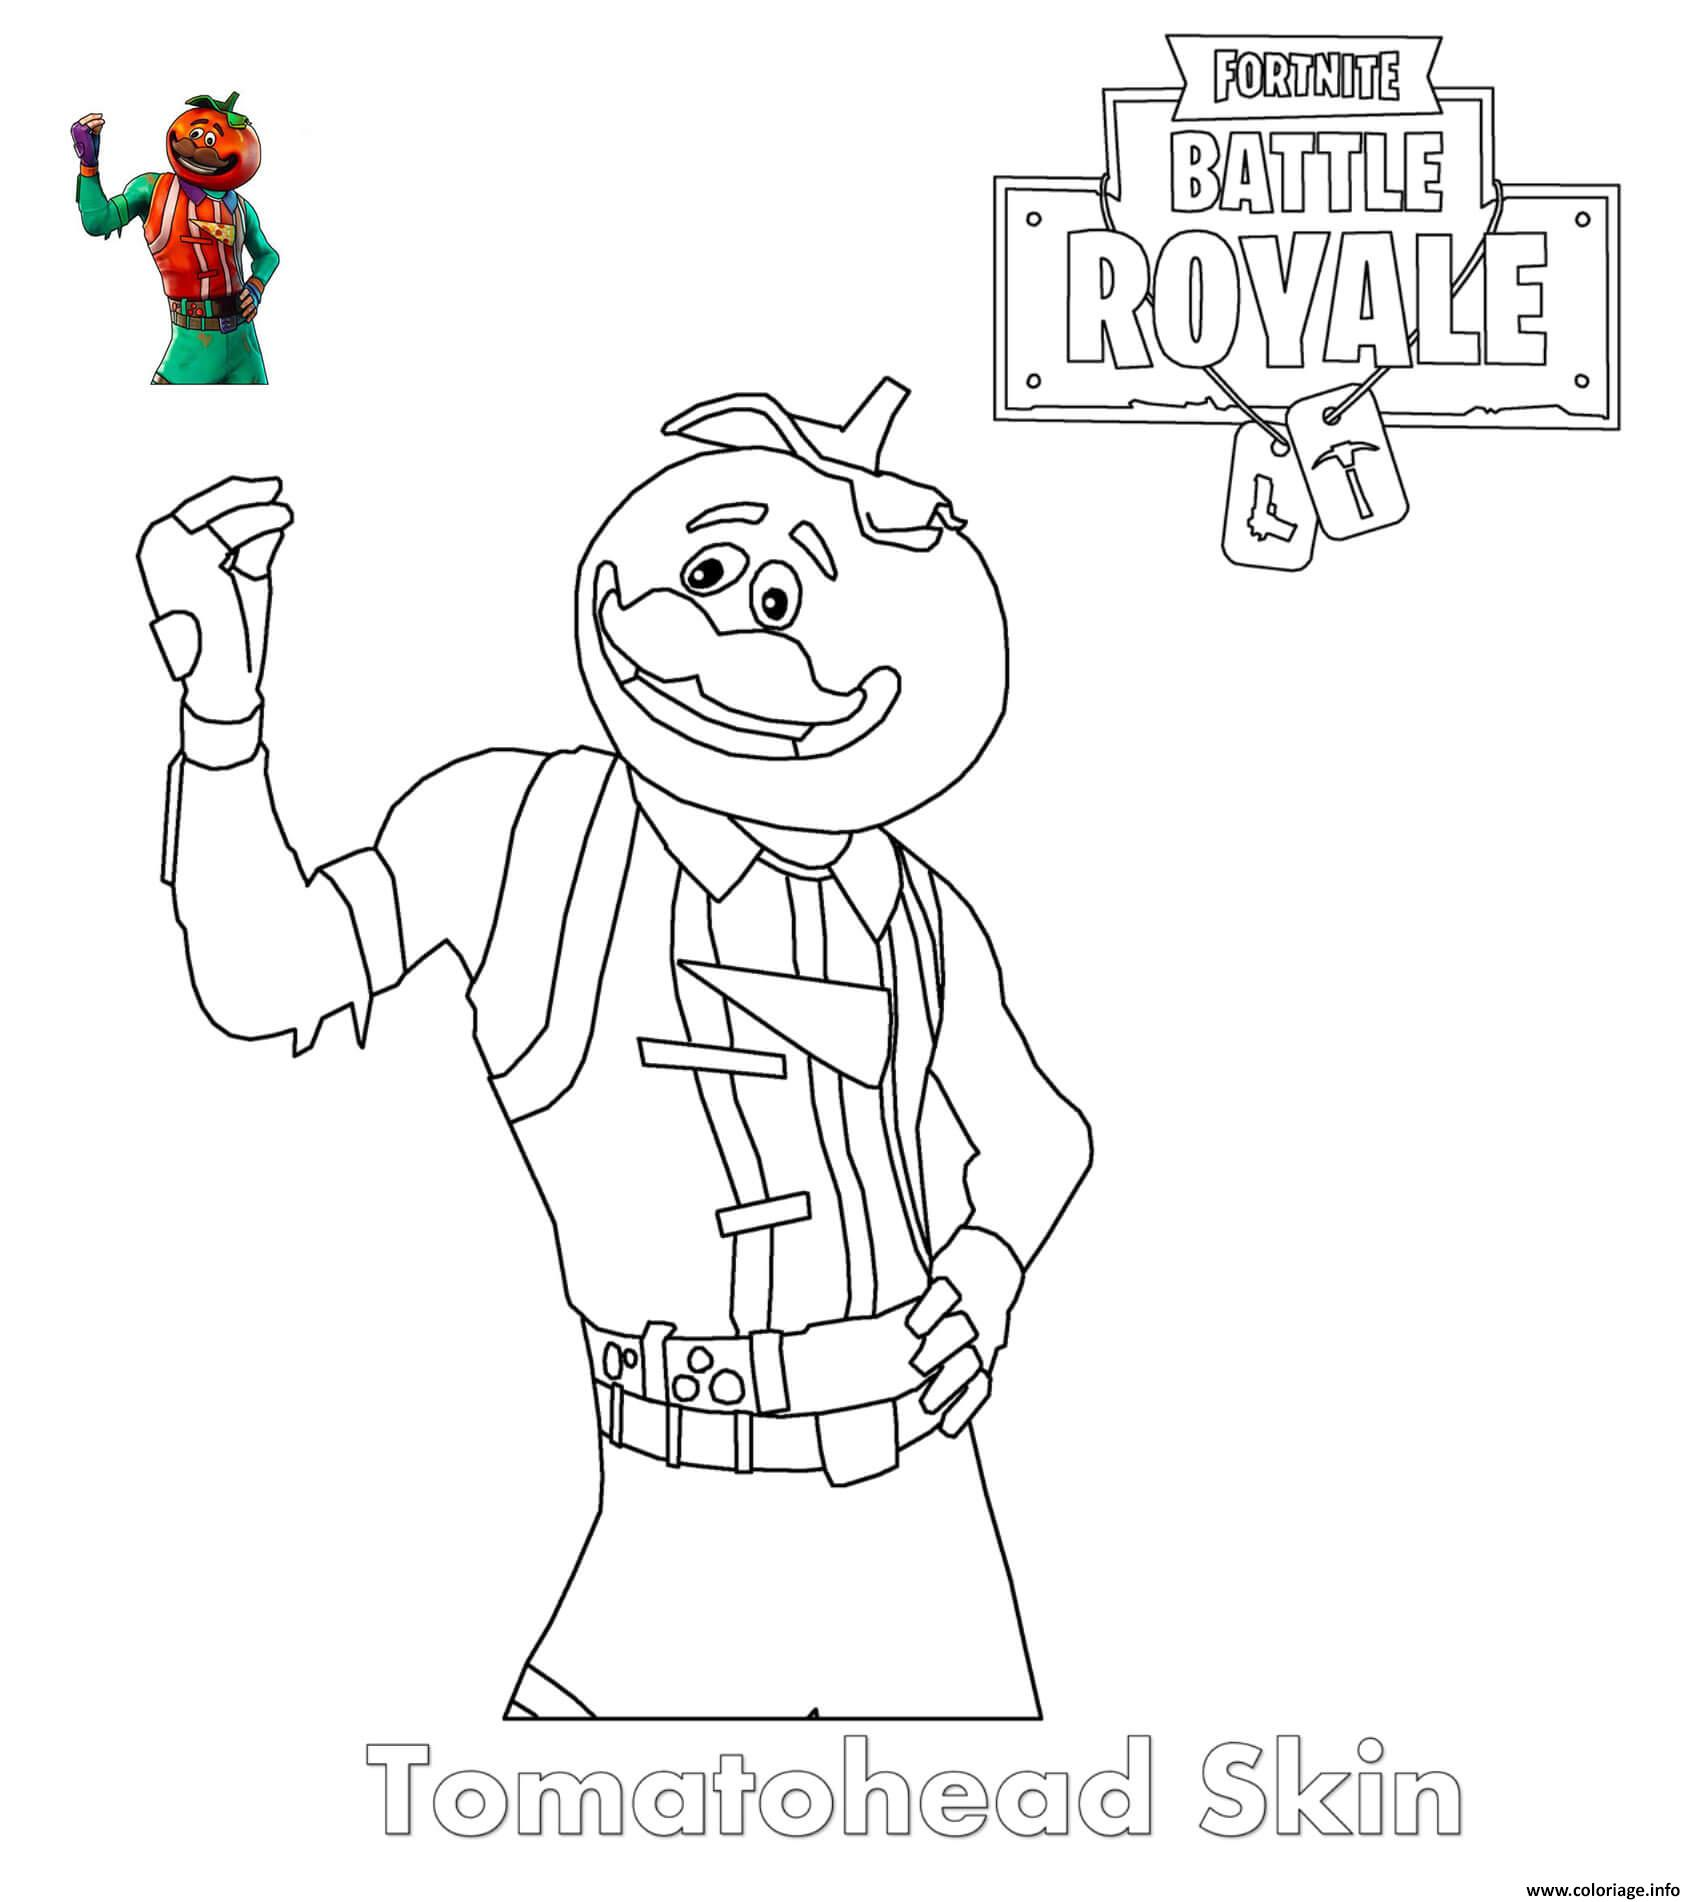 Coloriage Emoji Fortnite.Coloriage Tomatohead Skin Fortnite Dessin